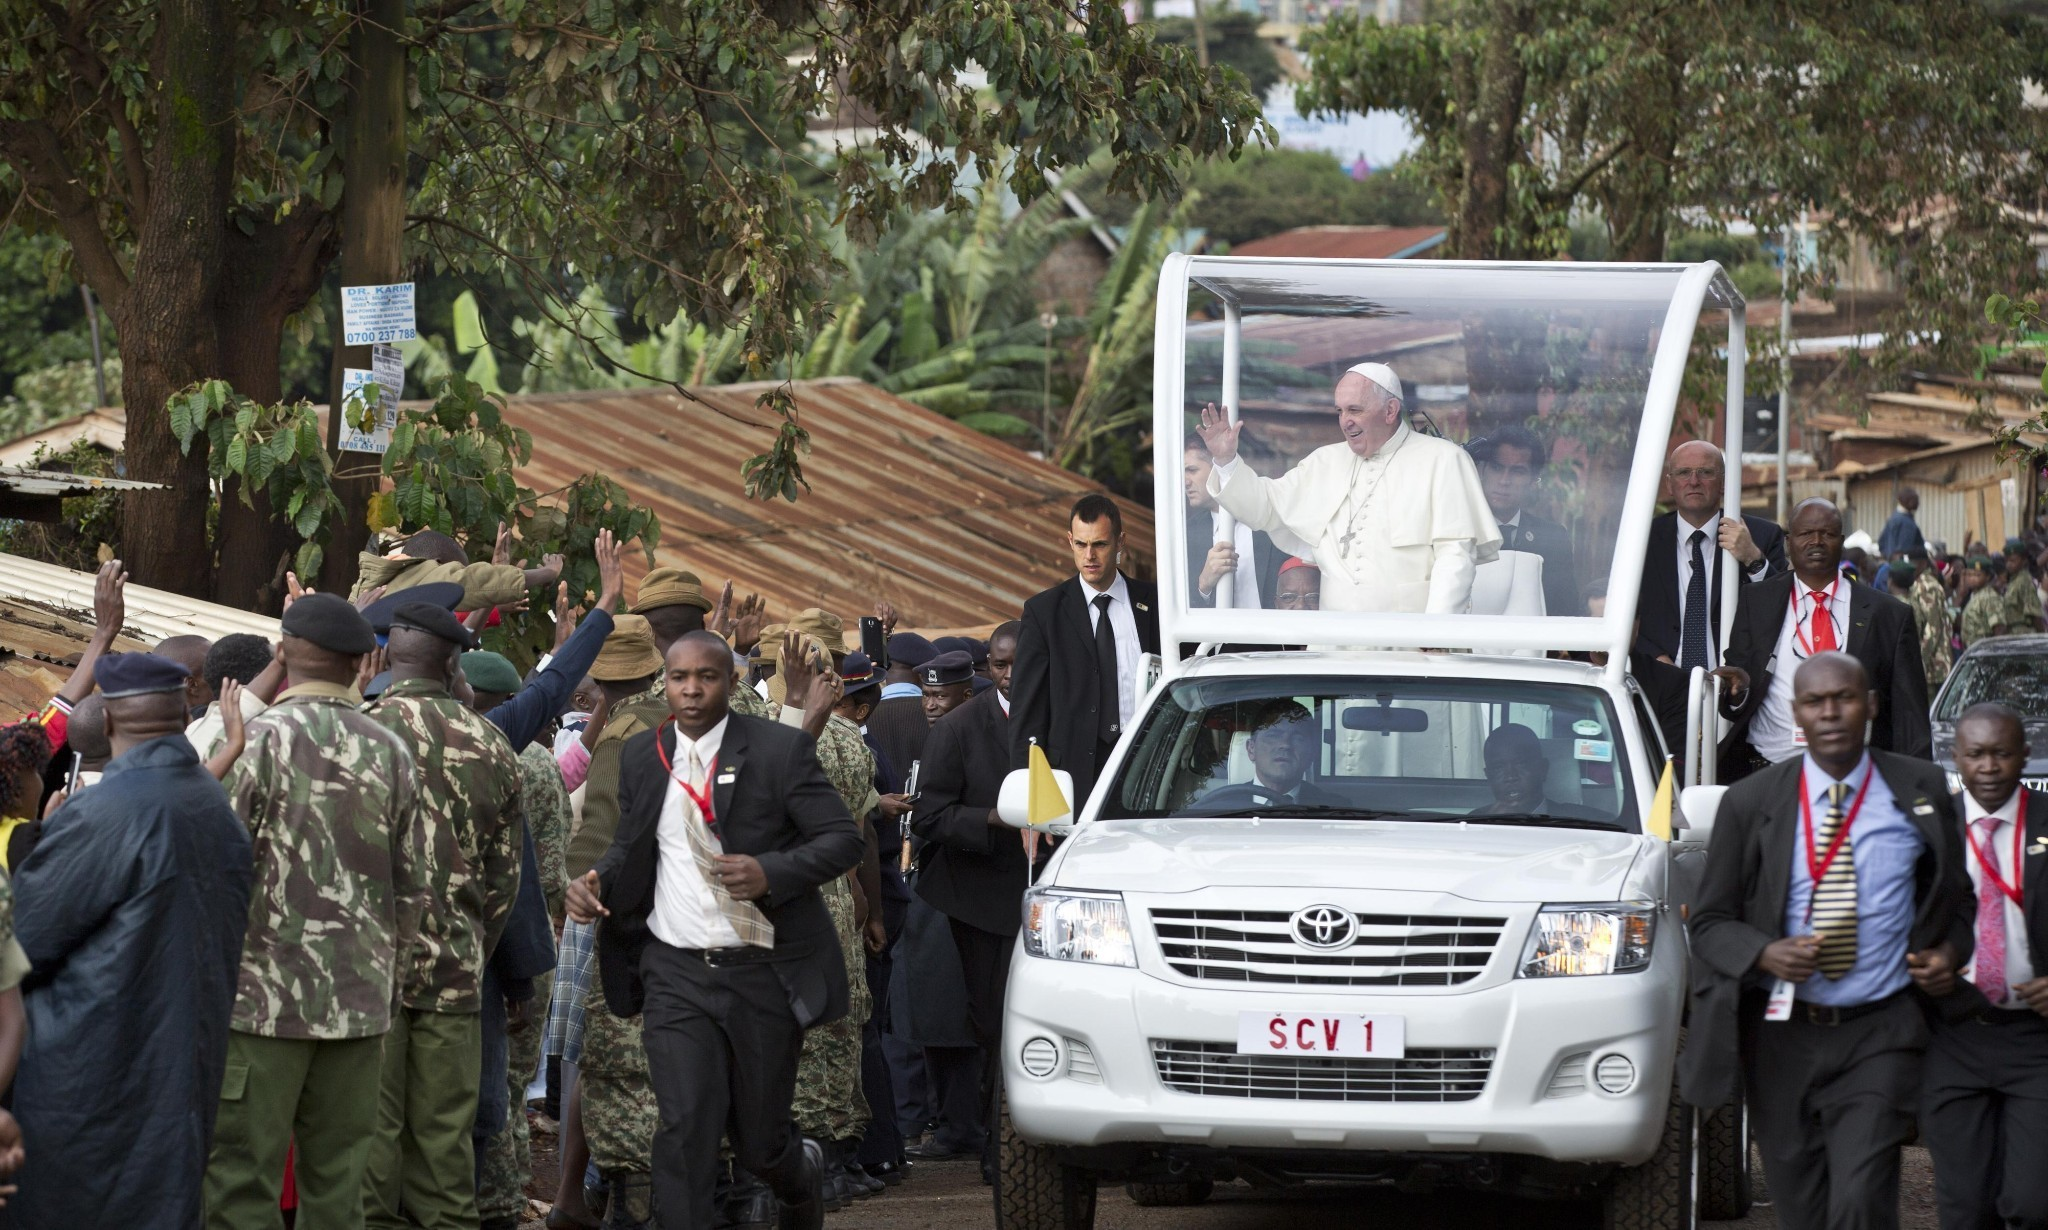 Pope Francis criticises 'new colonialism' in Kenya speech